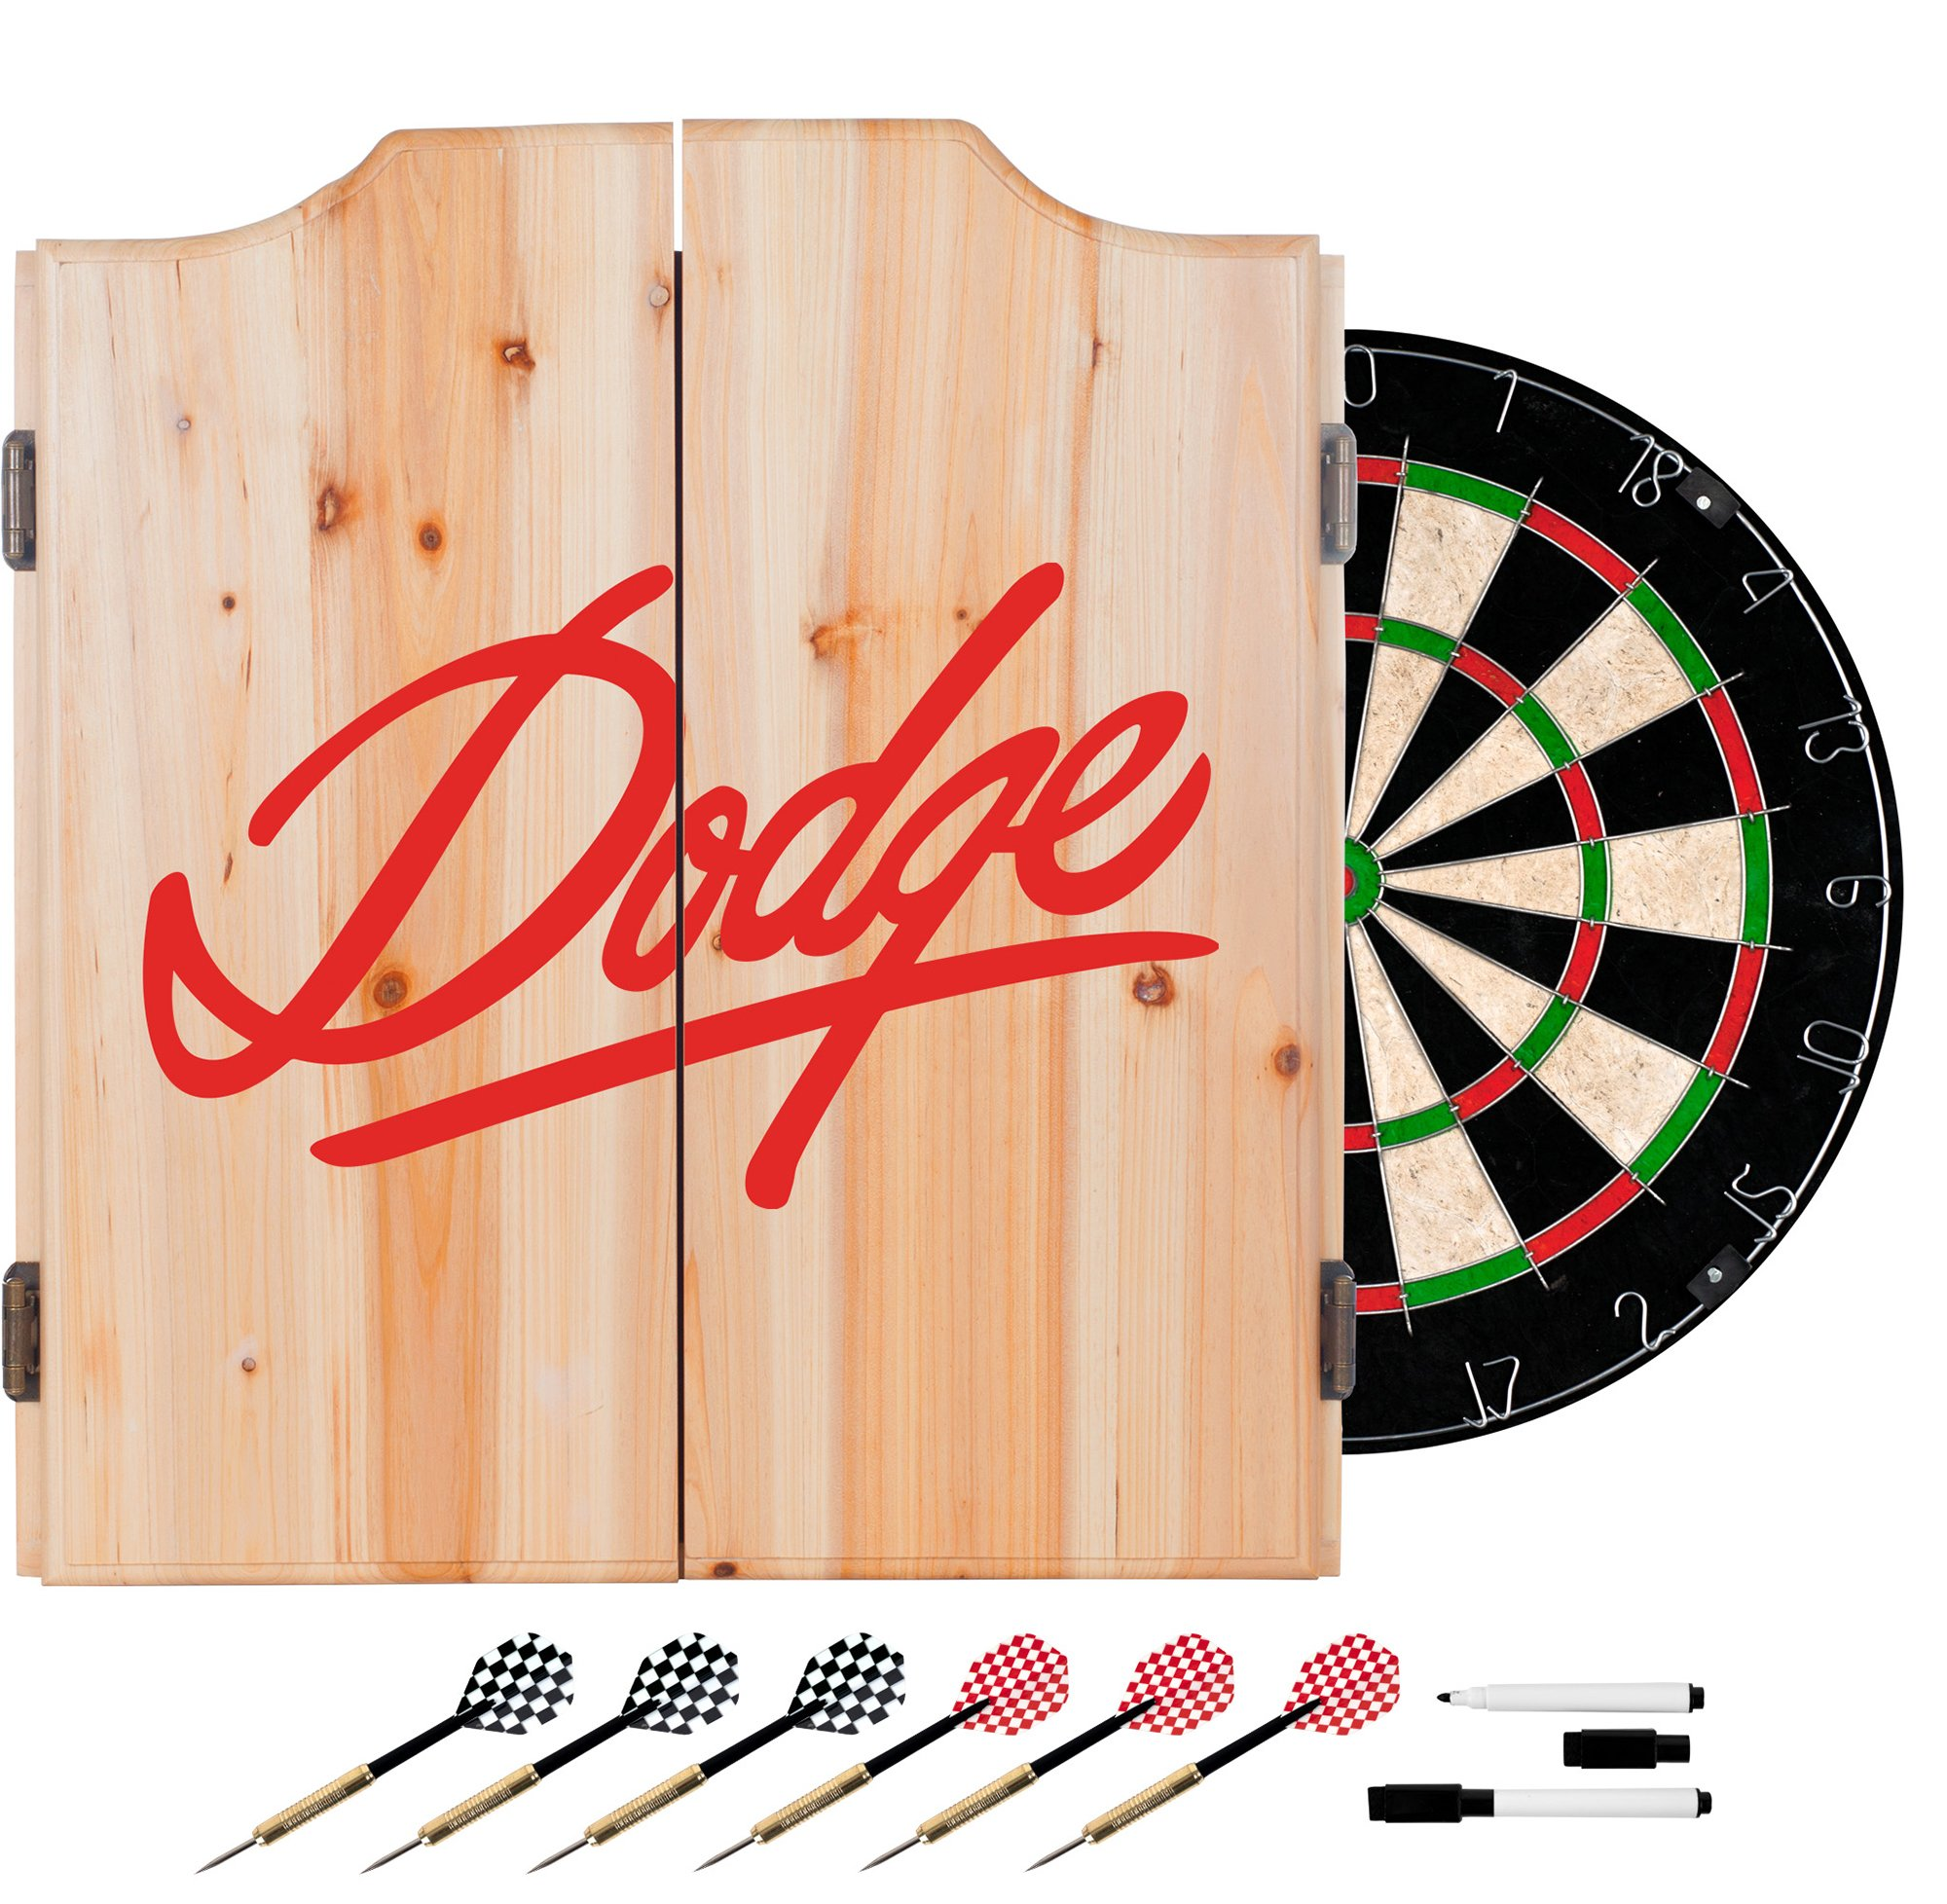 Trademark Gameroom Signature Dodge Dart Cabinet Set with Darts & Board